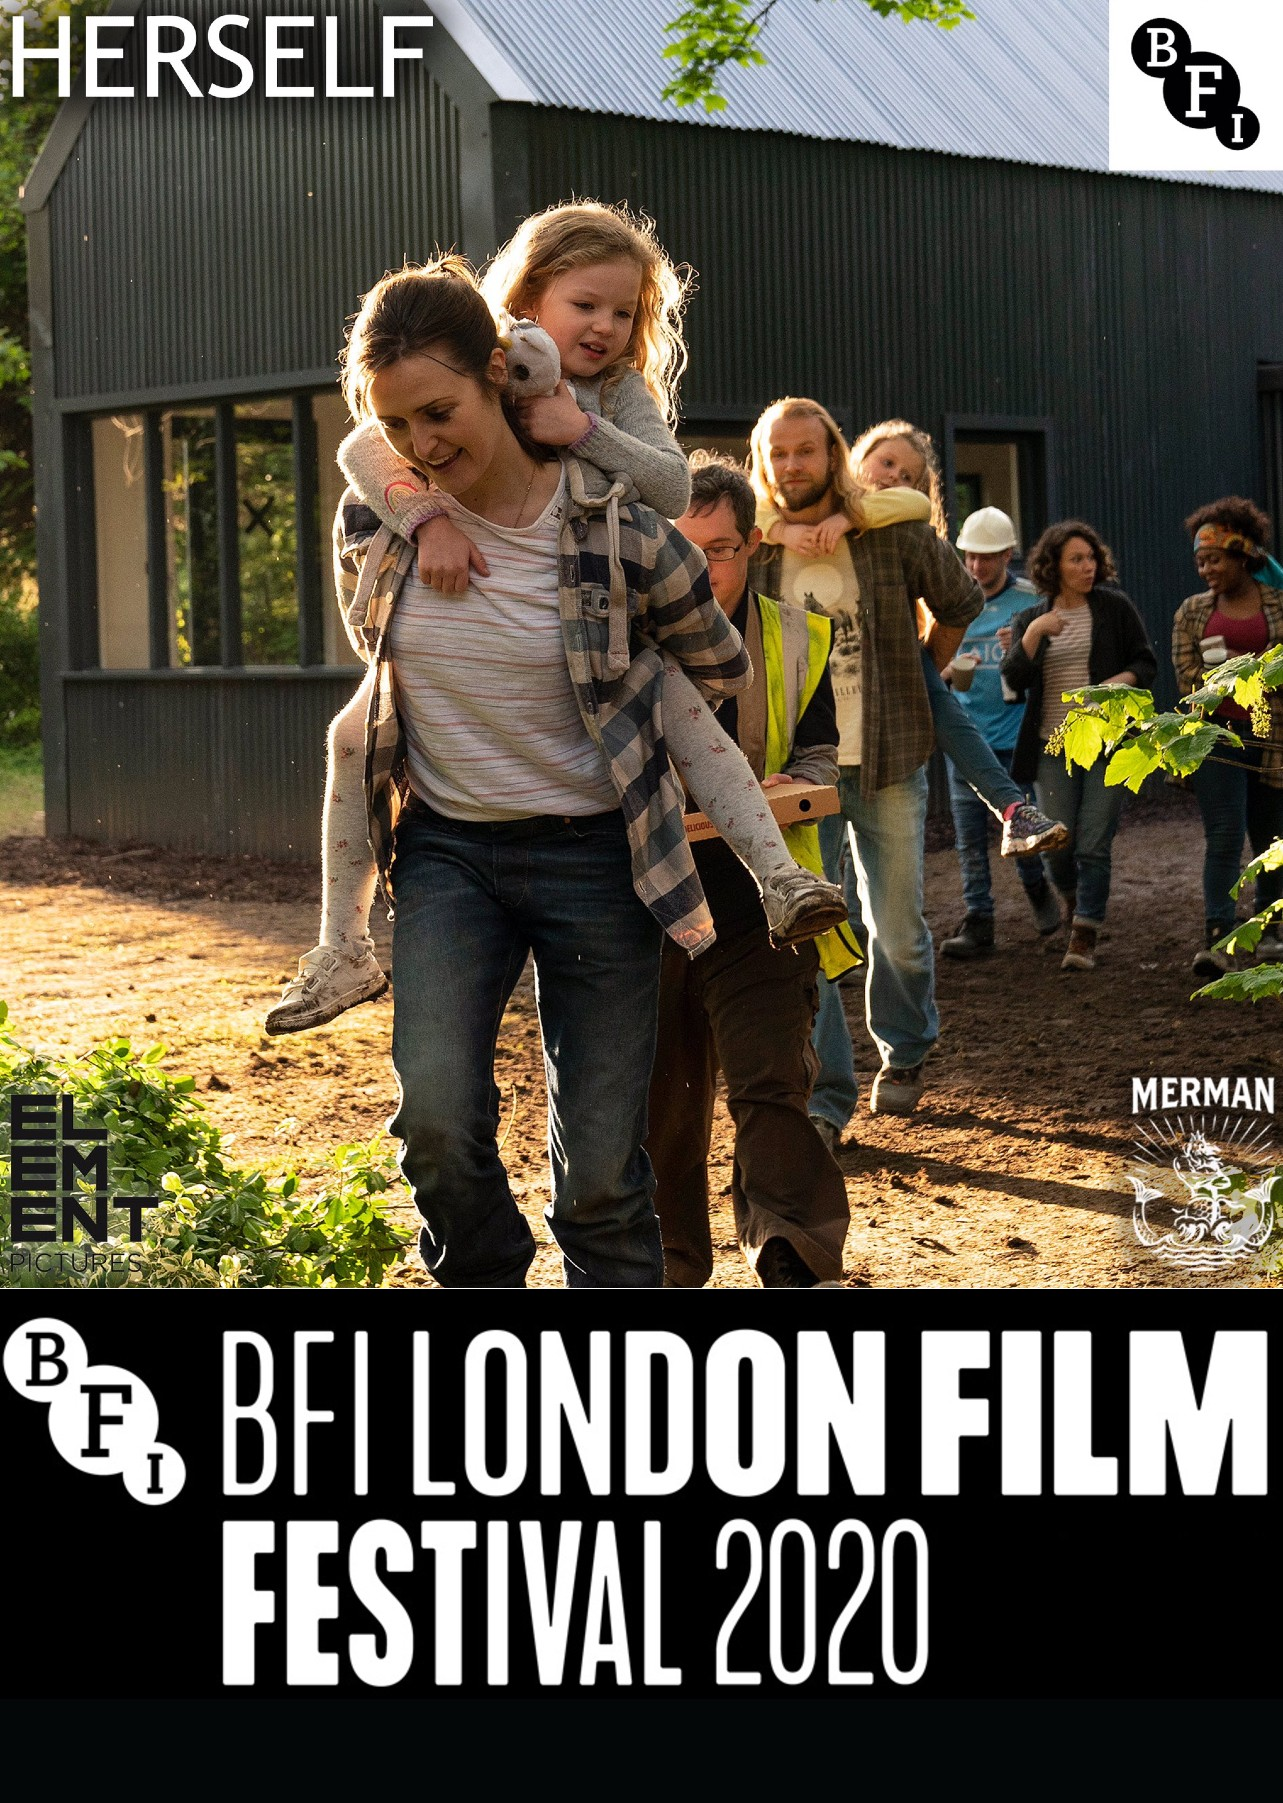 BFI London Film Festival 2020: Herself